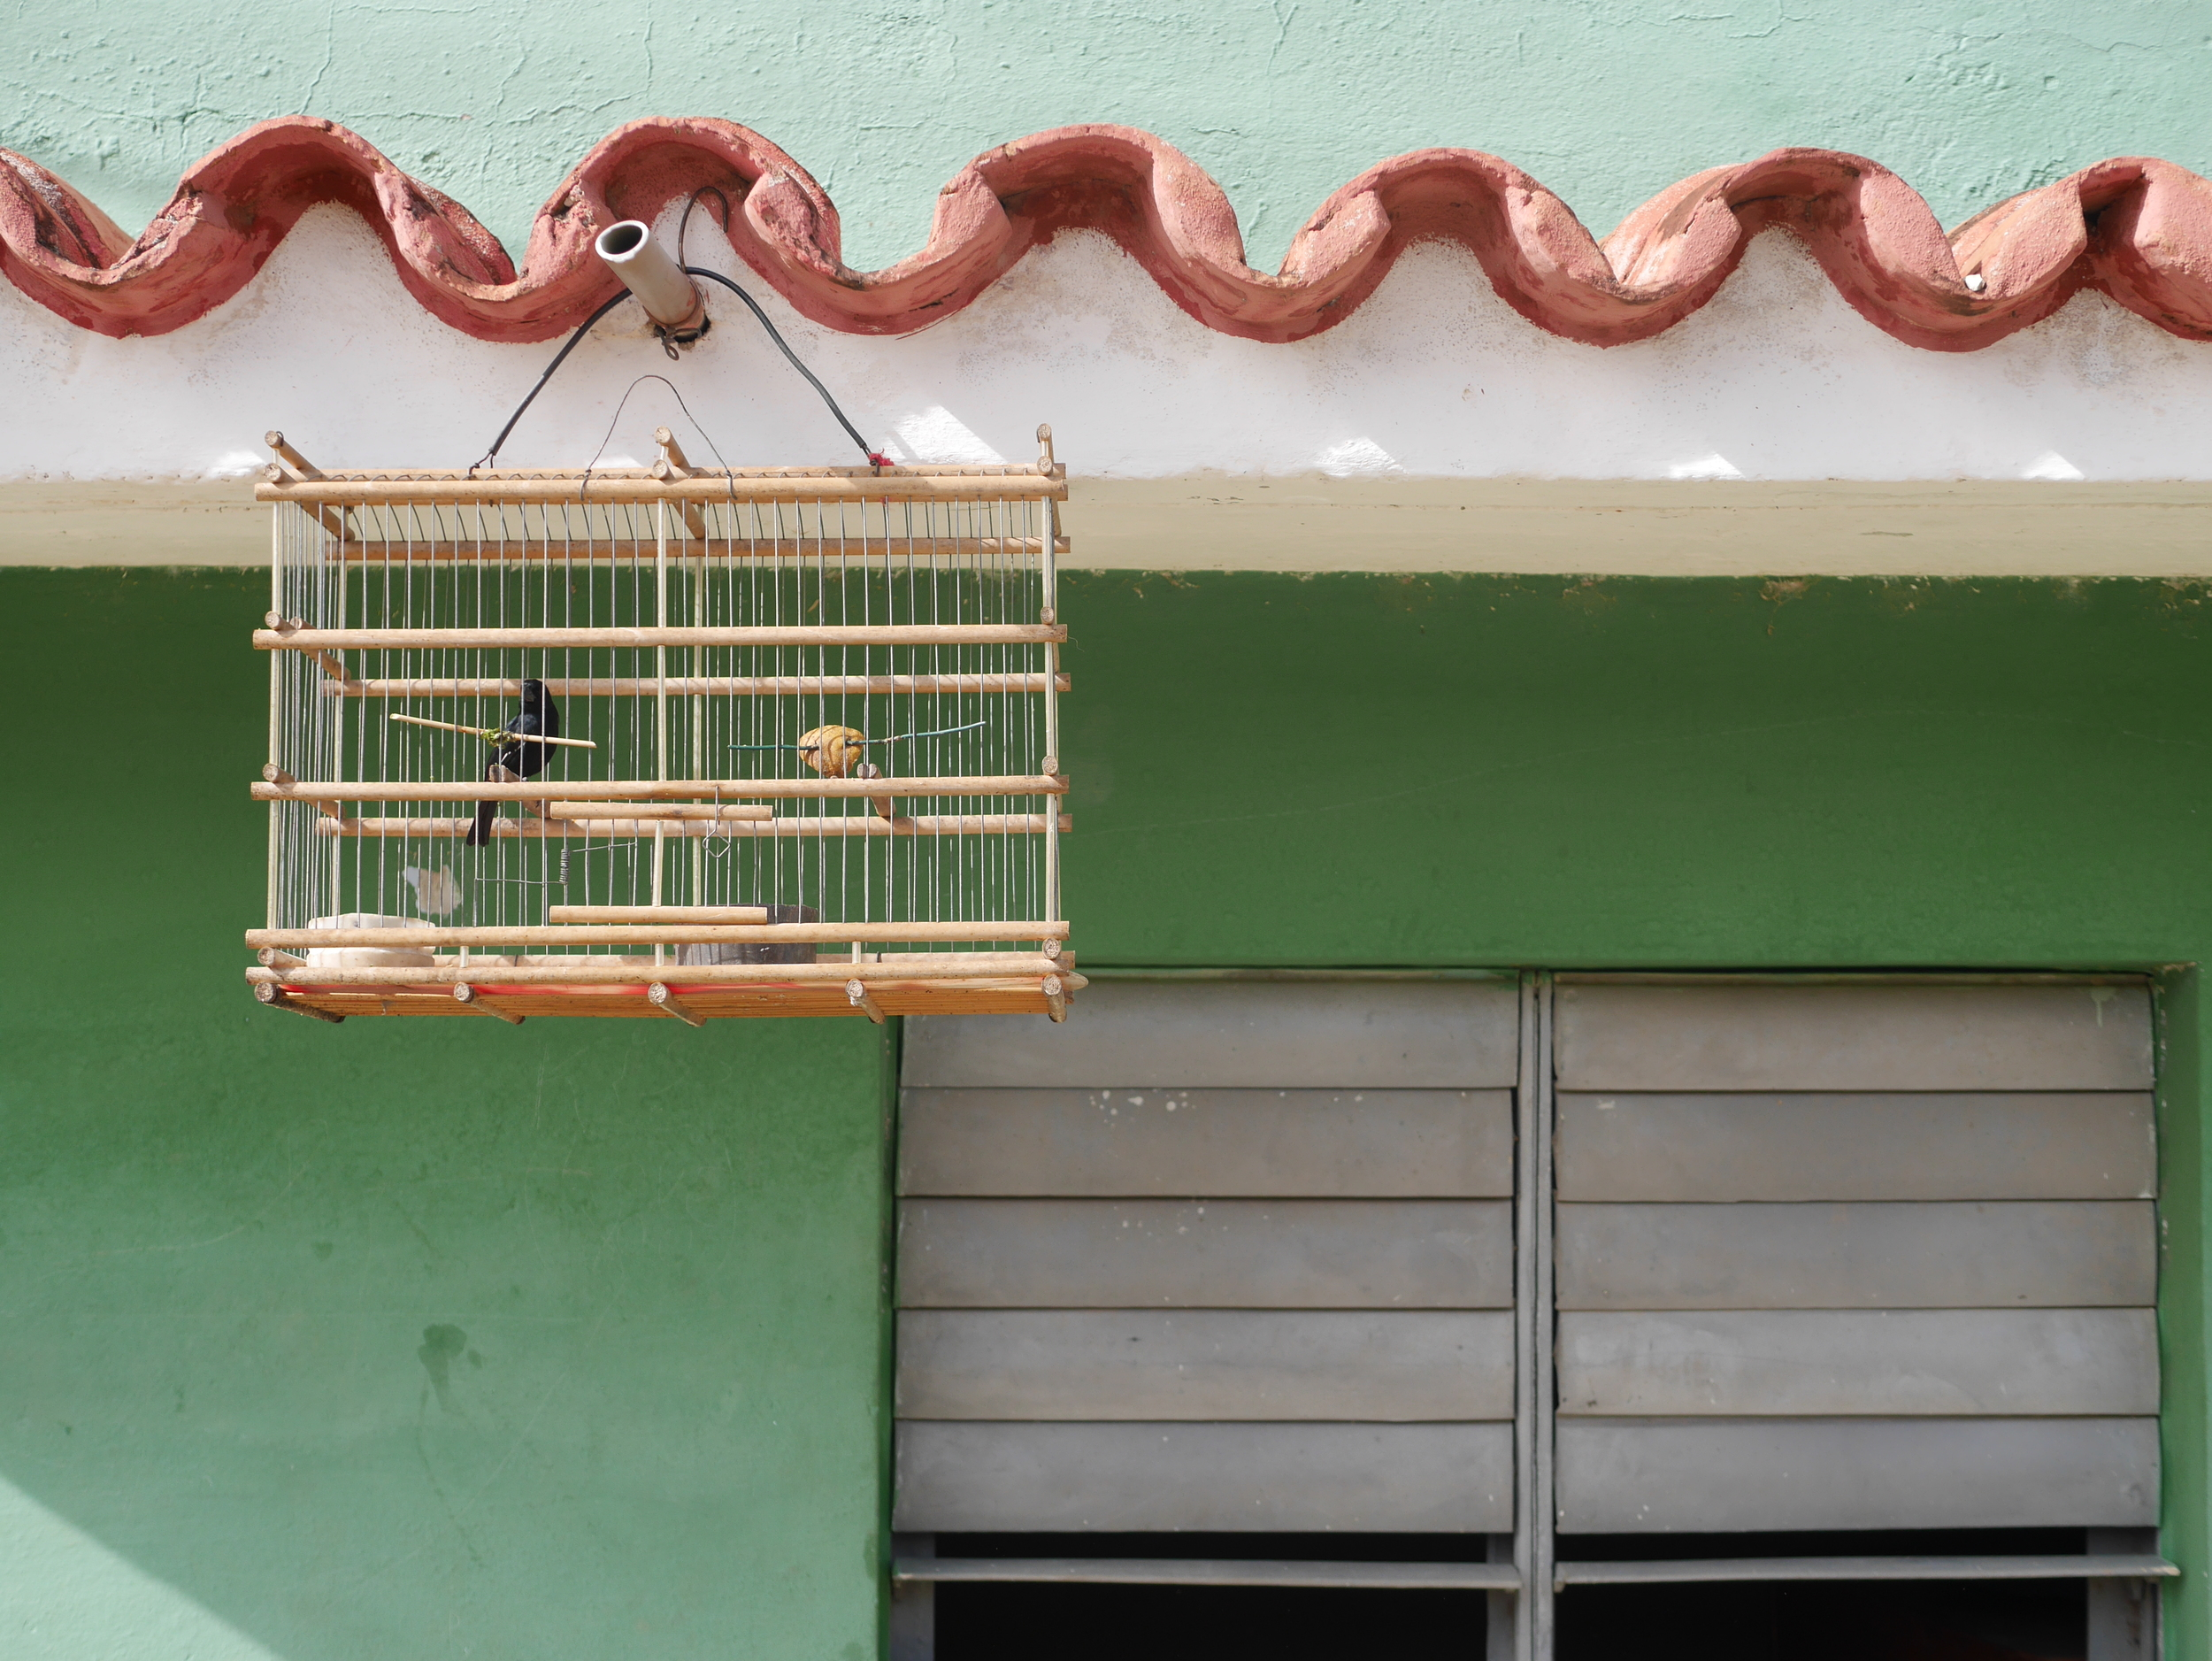 Blackbirds hang on many Cuban's homes. We were told there is some sort of contest associated with this.